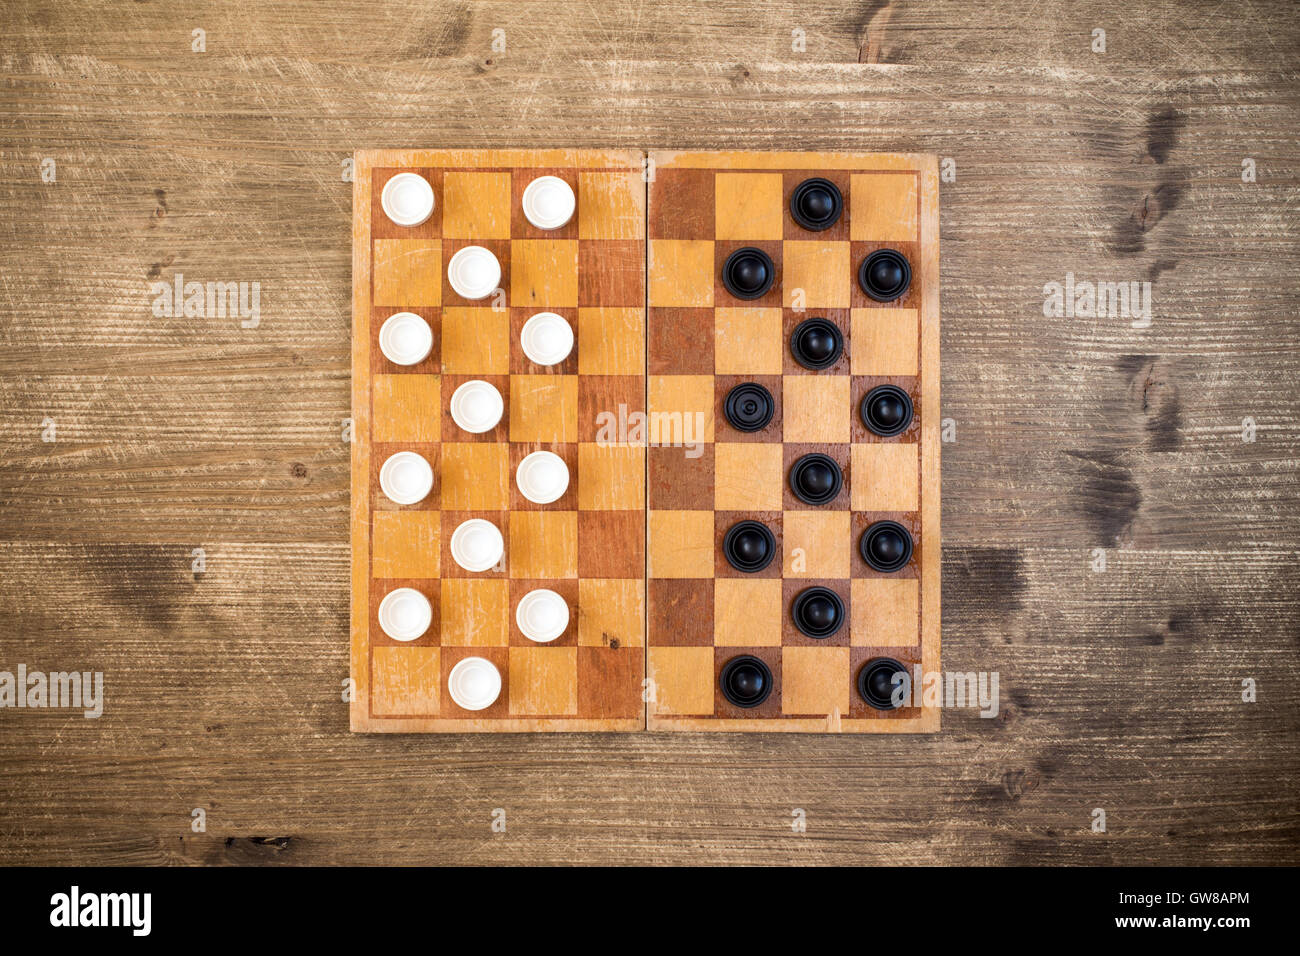 Top view of draughts checkers board game - Stock Image